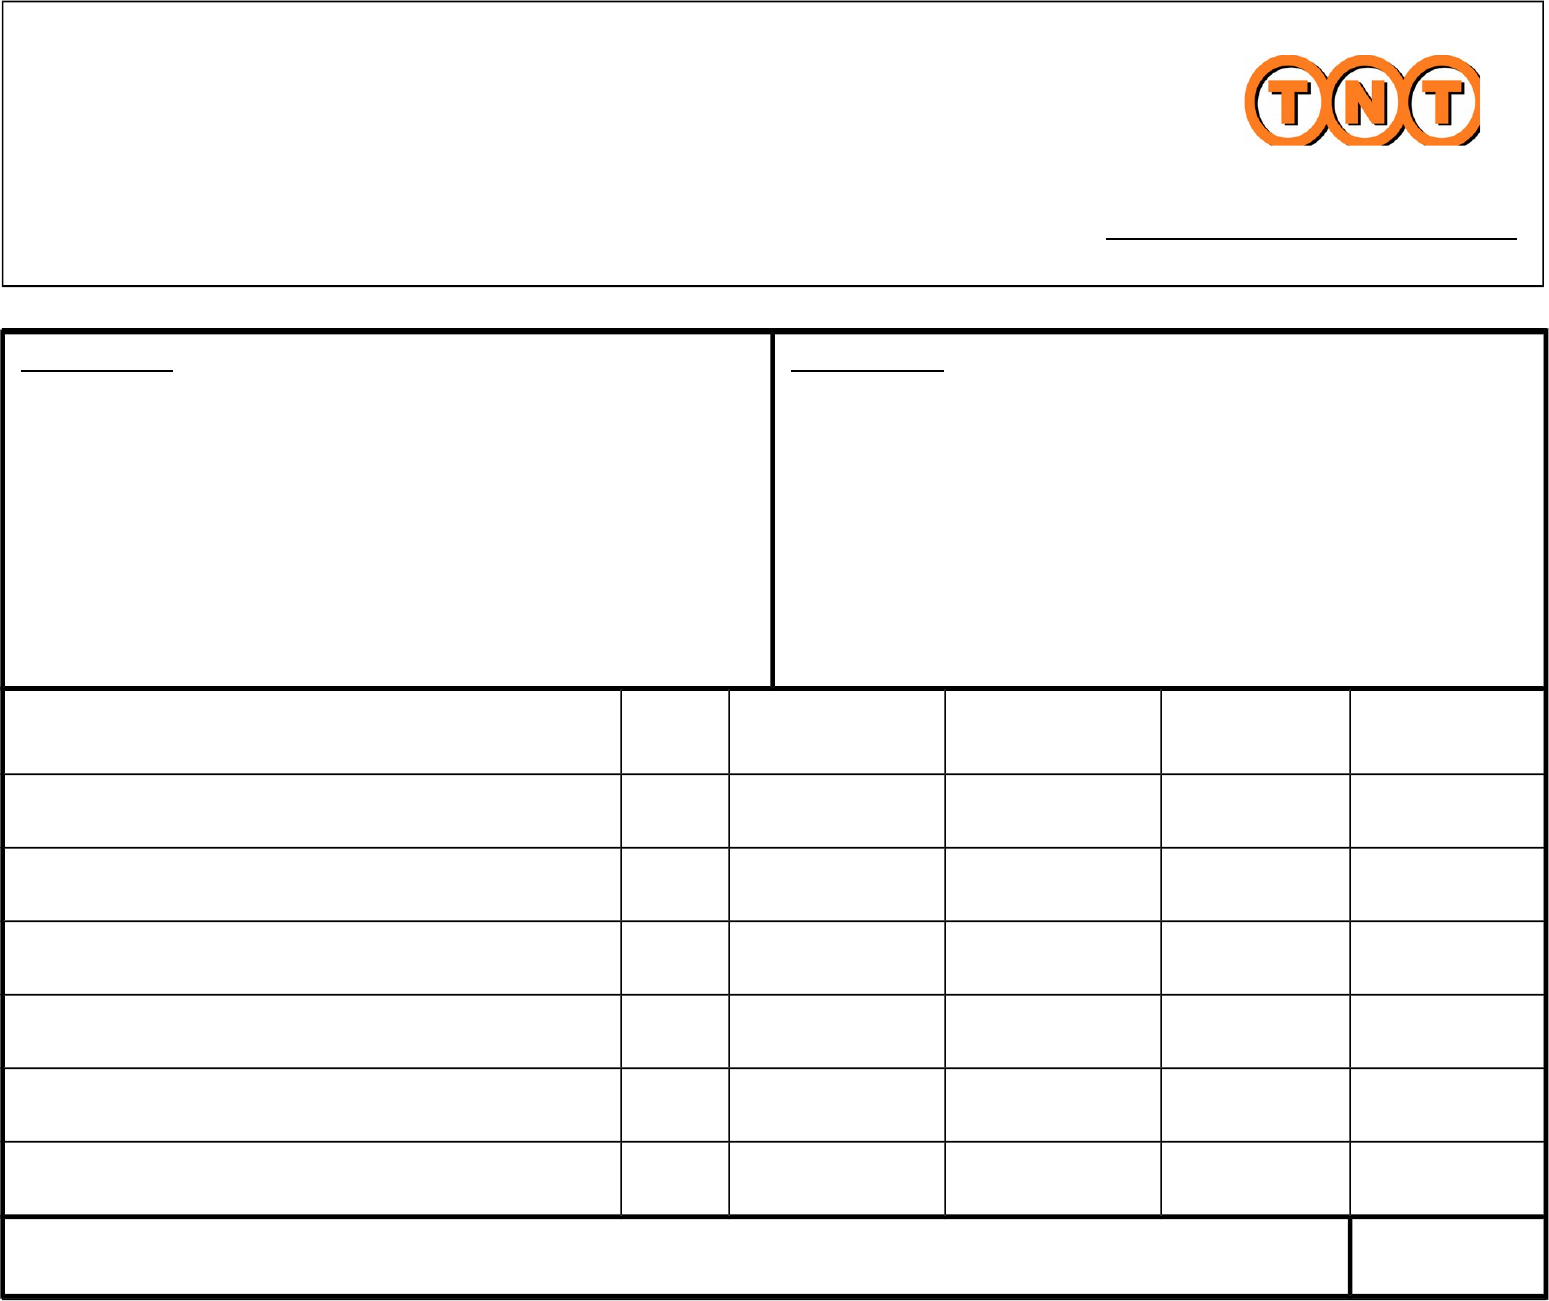 sample proforma invoice template free download